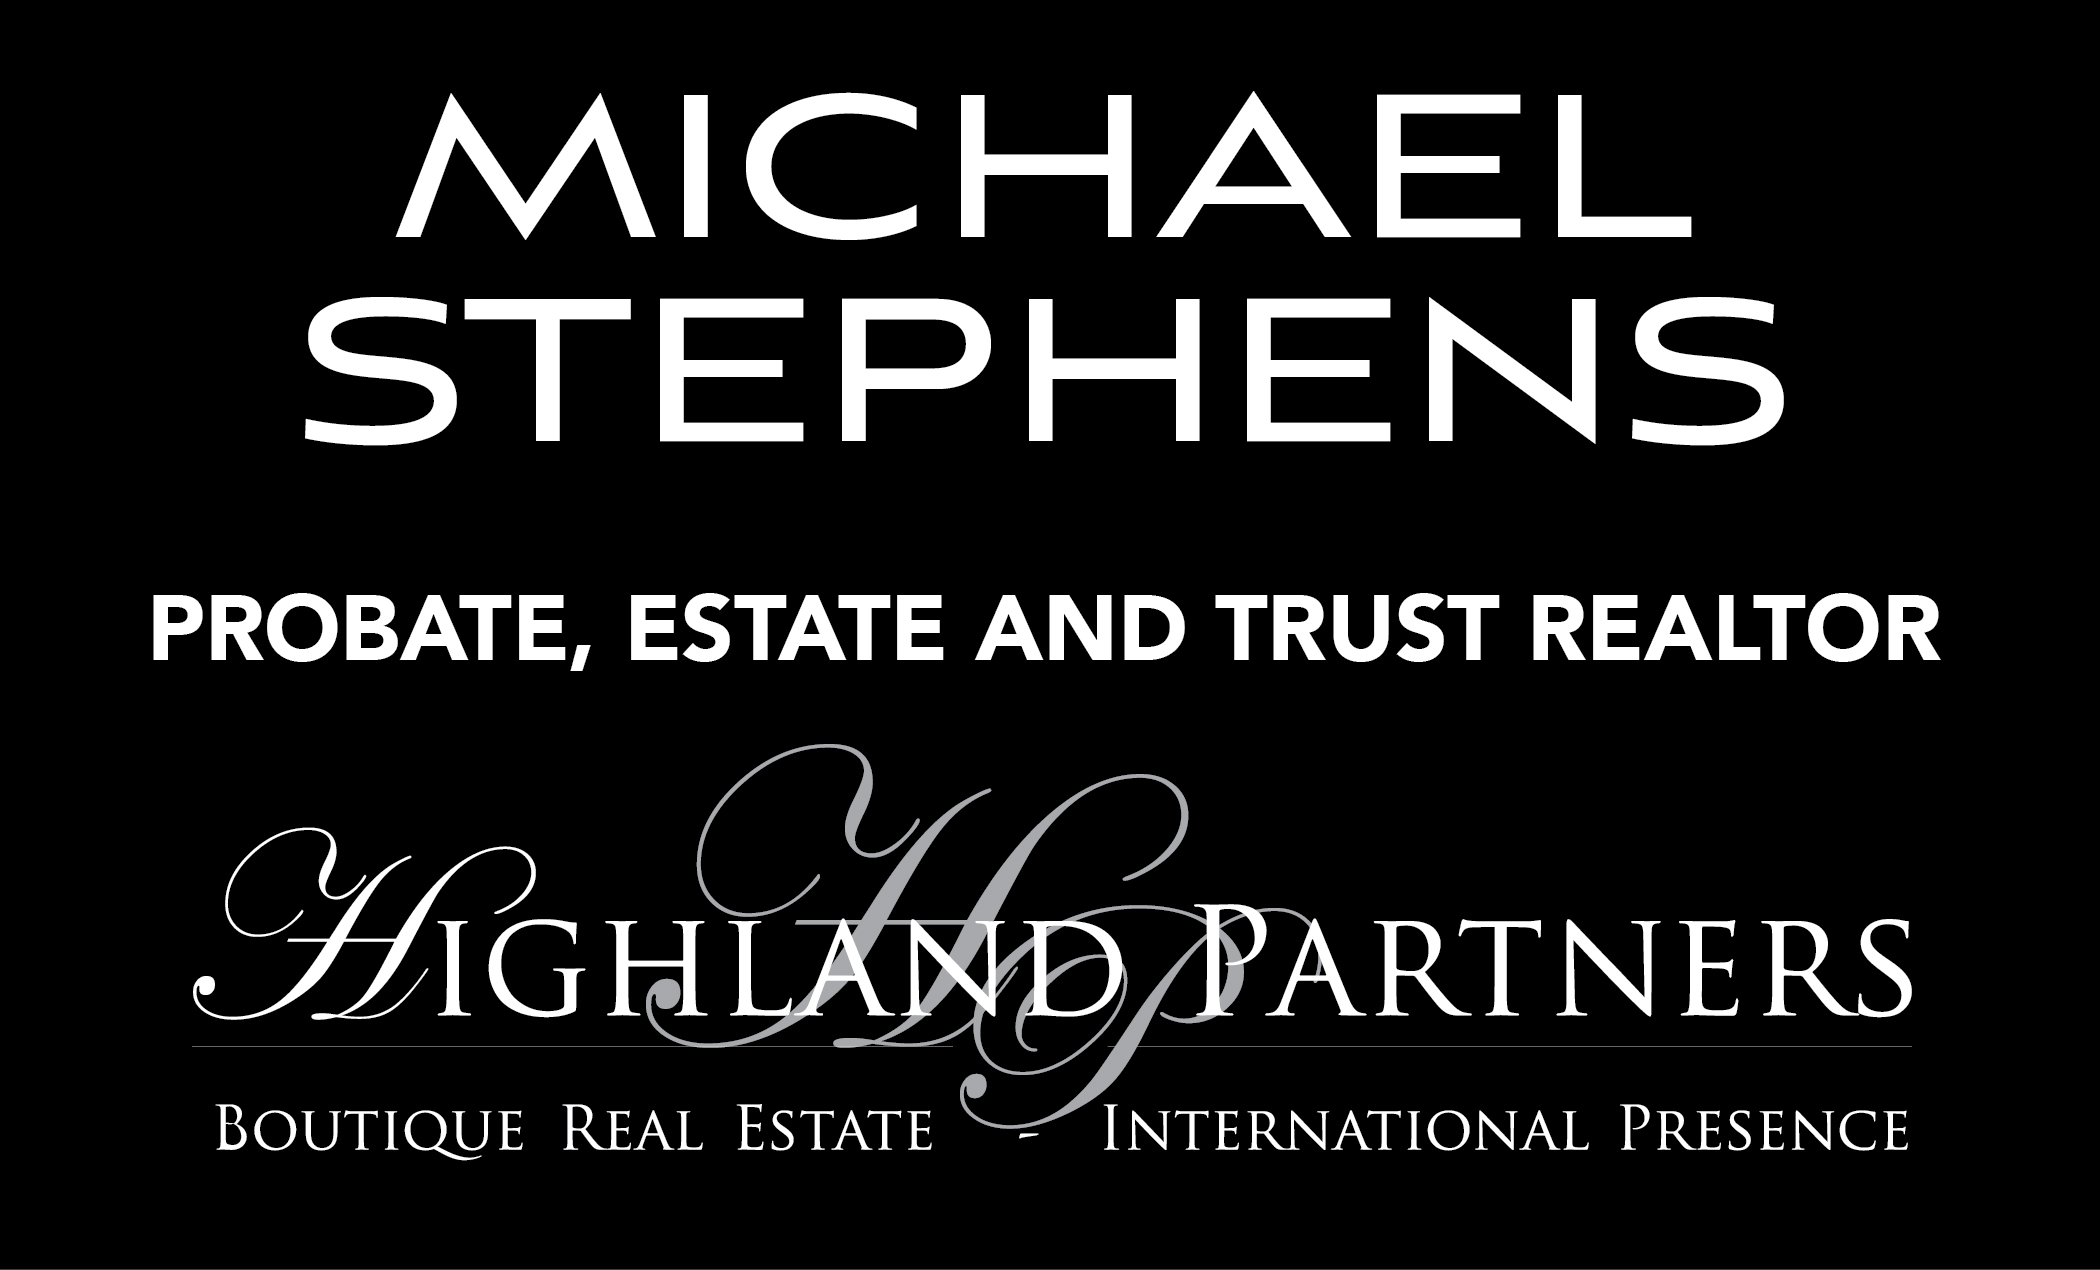 https://sntsymposium.com/wp-content/uploads/2015/12/Marketing-logo-Michael-Stephens-on-black.jpg